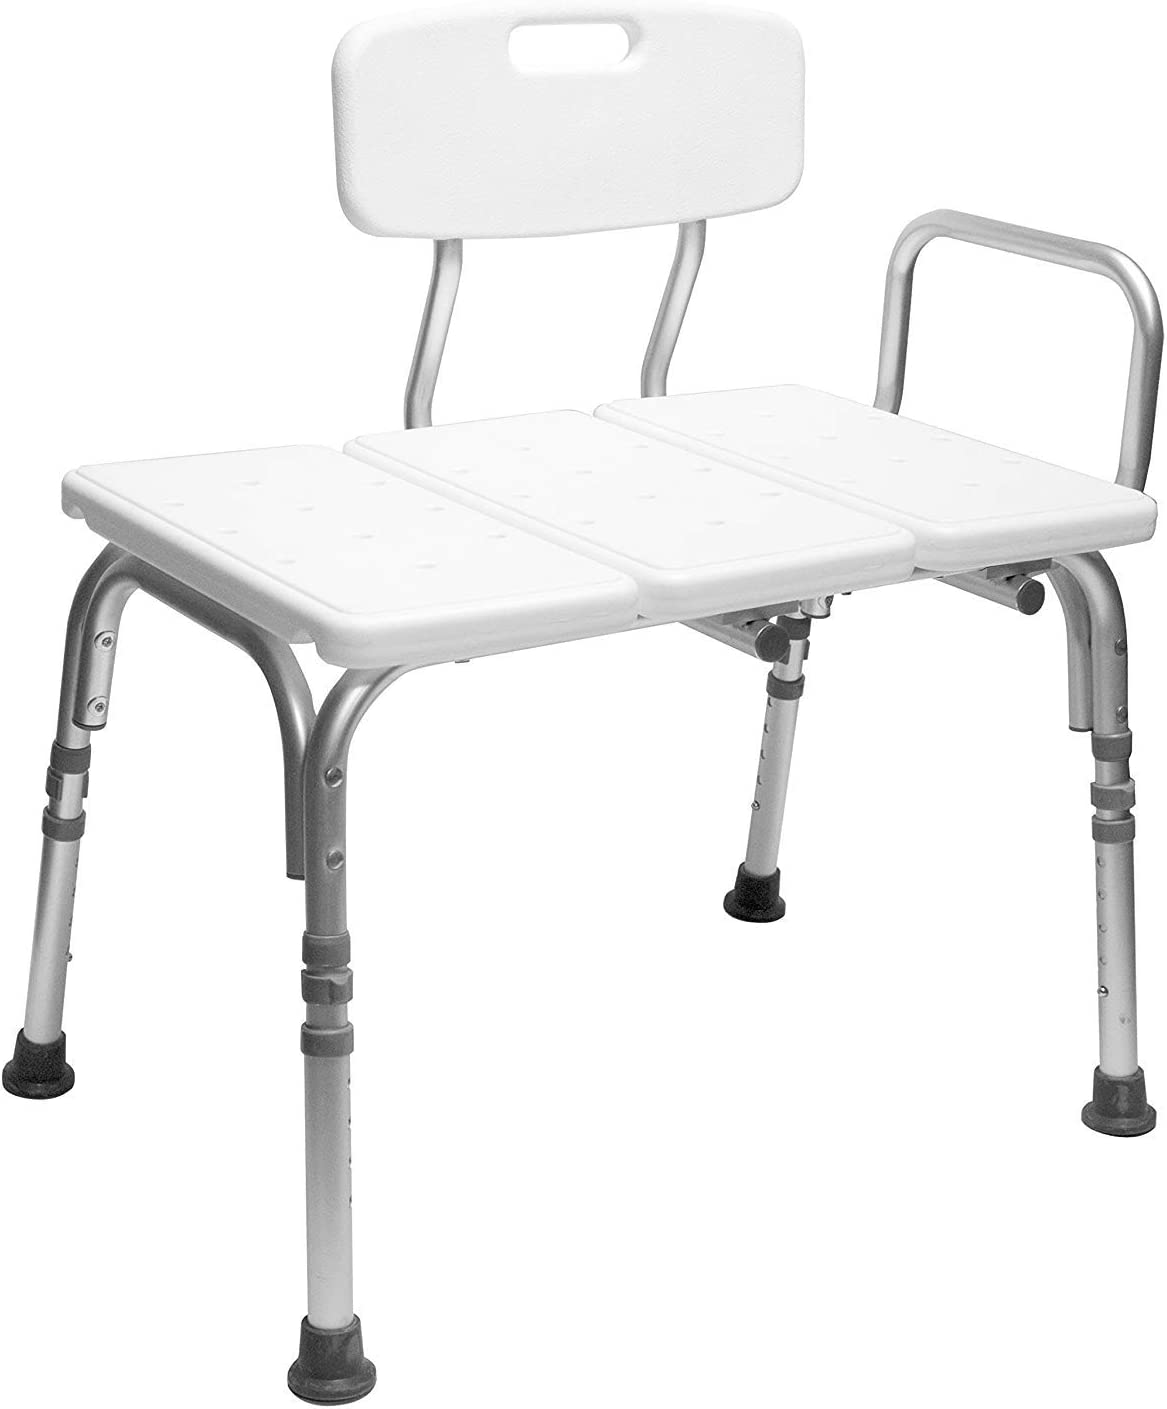 Carex Tub Transfer Bench - Shower Chair Transfer Bench with Height Adjustable Legs - Convertible to Right or Left Hand Entry 61-OMFiVvuL